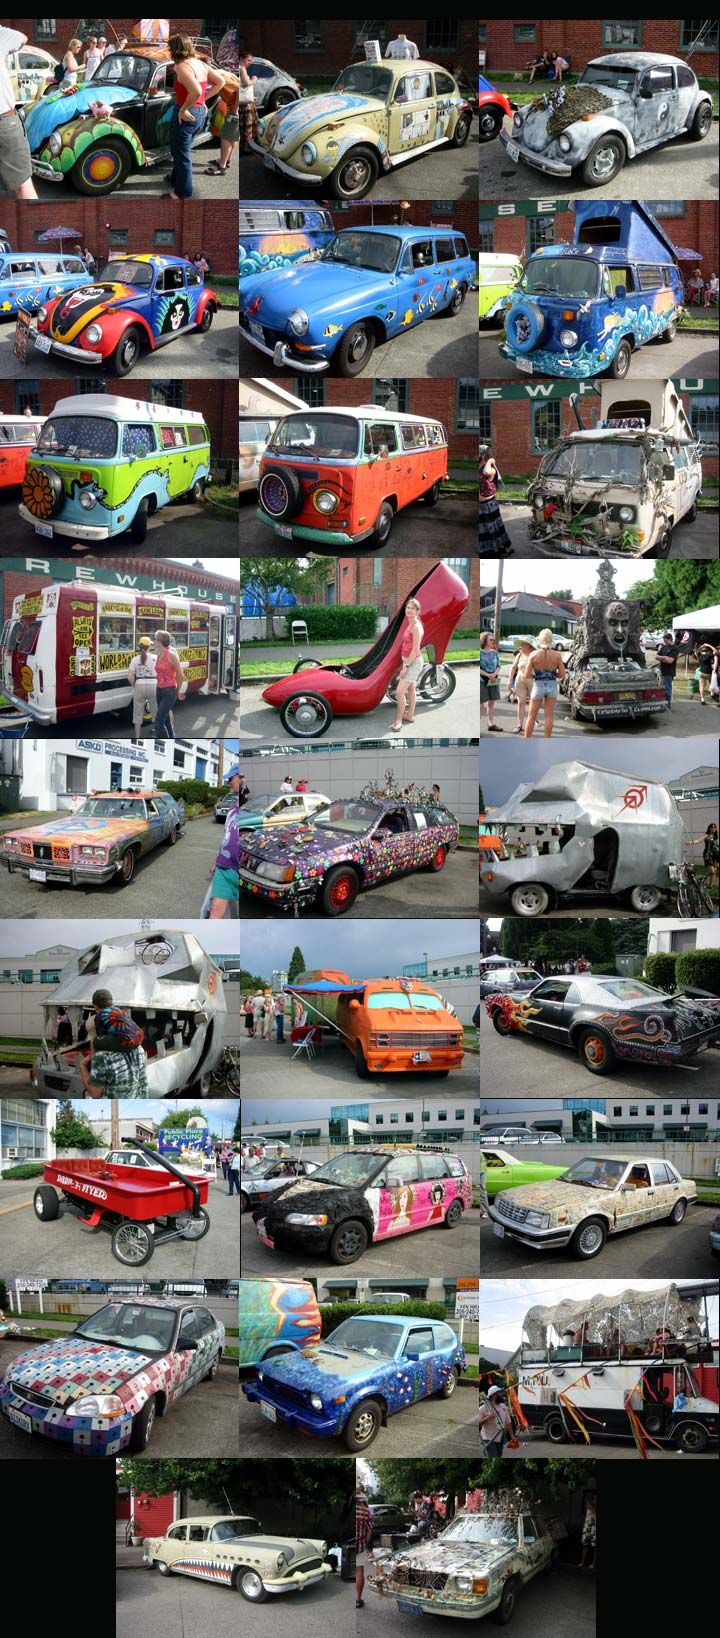 Pin By Jennifer Anspach On My Seattle Art Cars Hot Rods Cars Muscle Car Art